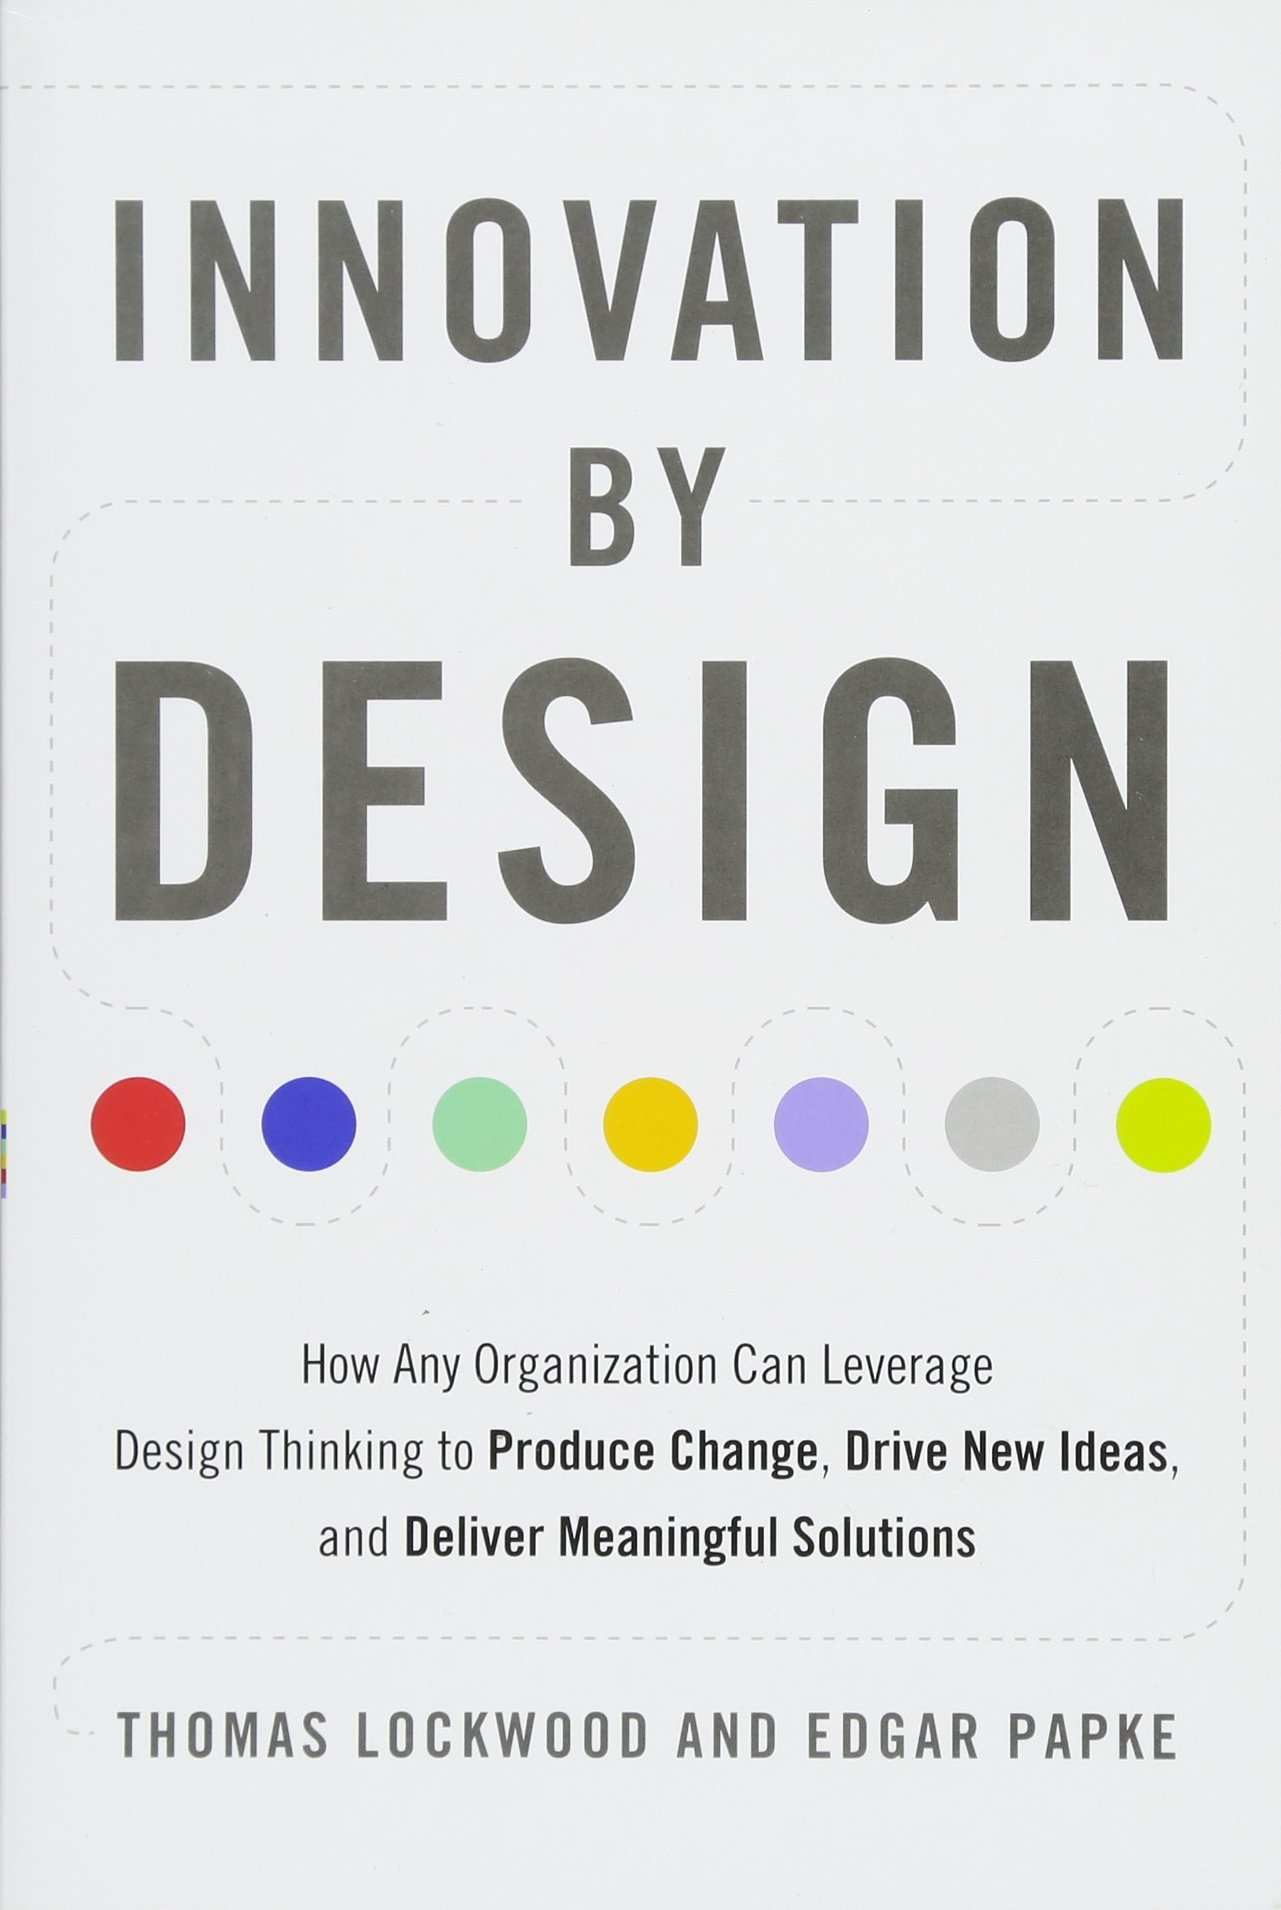 Amazon.com: Innovation by Design: How Any Organization Can Leverage Design  Thinking to Produce Change, Drive New Ideas, and Deliver Meaningful  Solutions ...